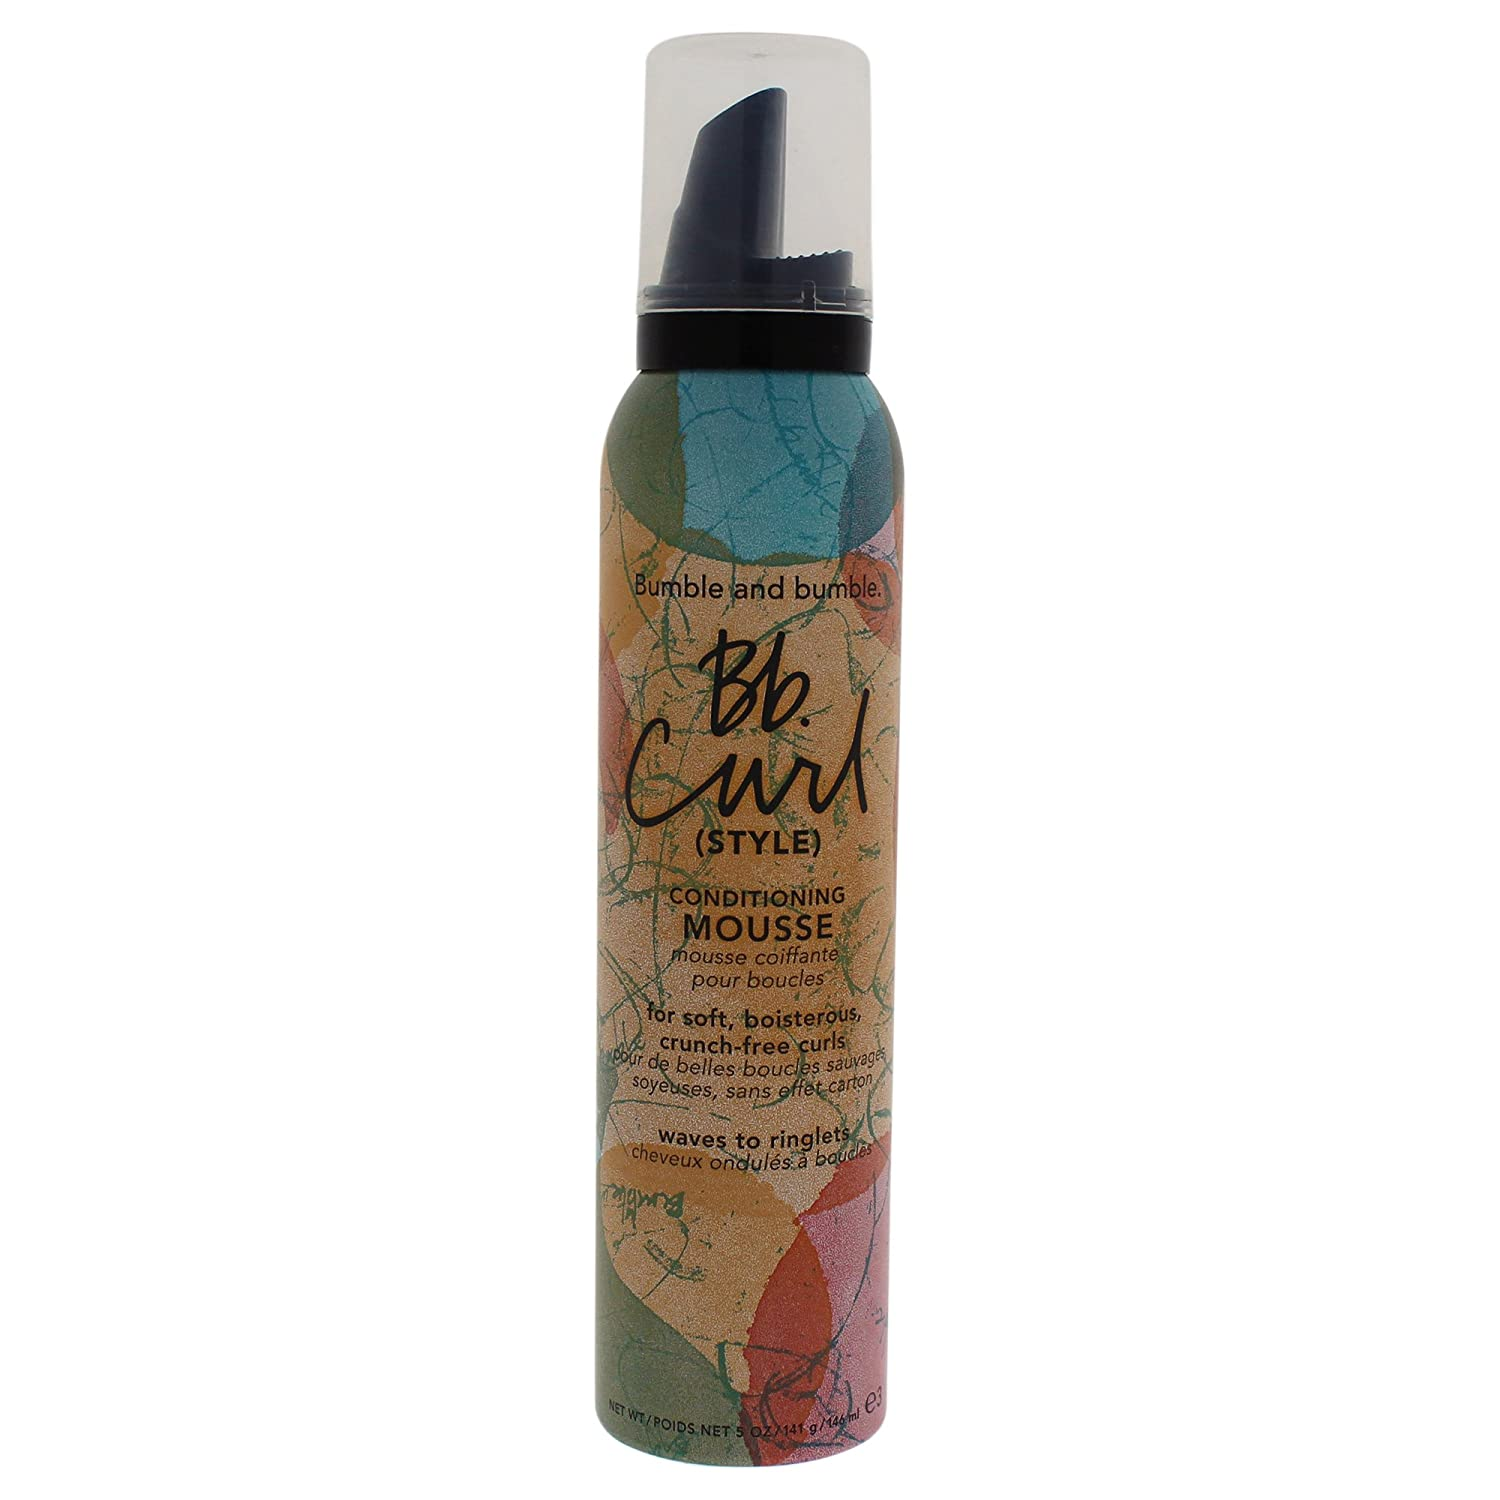 Bumble and Bumble Curl Style Conditioning Mousse 5 oz 685428019621